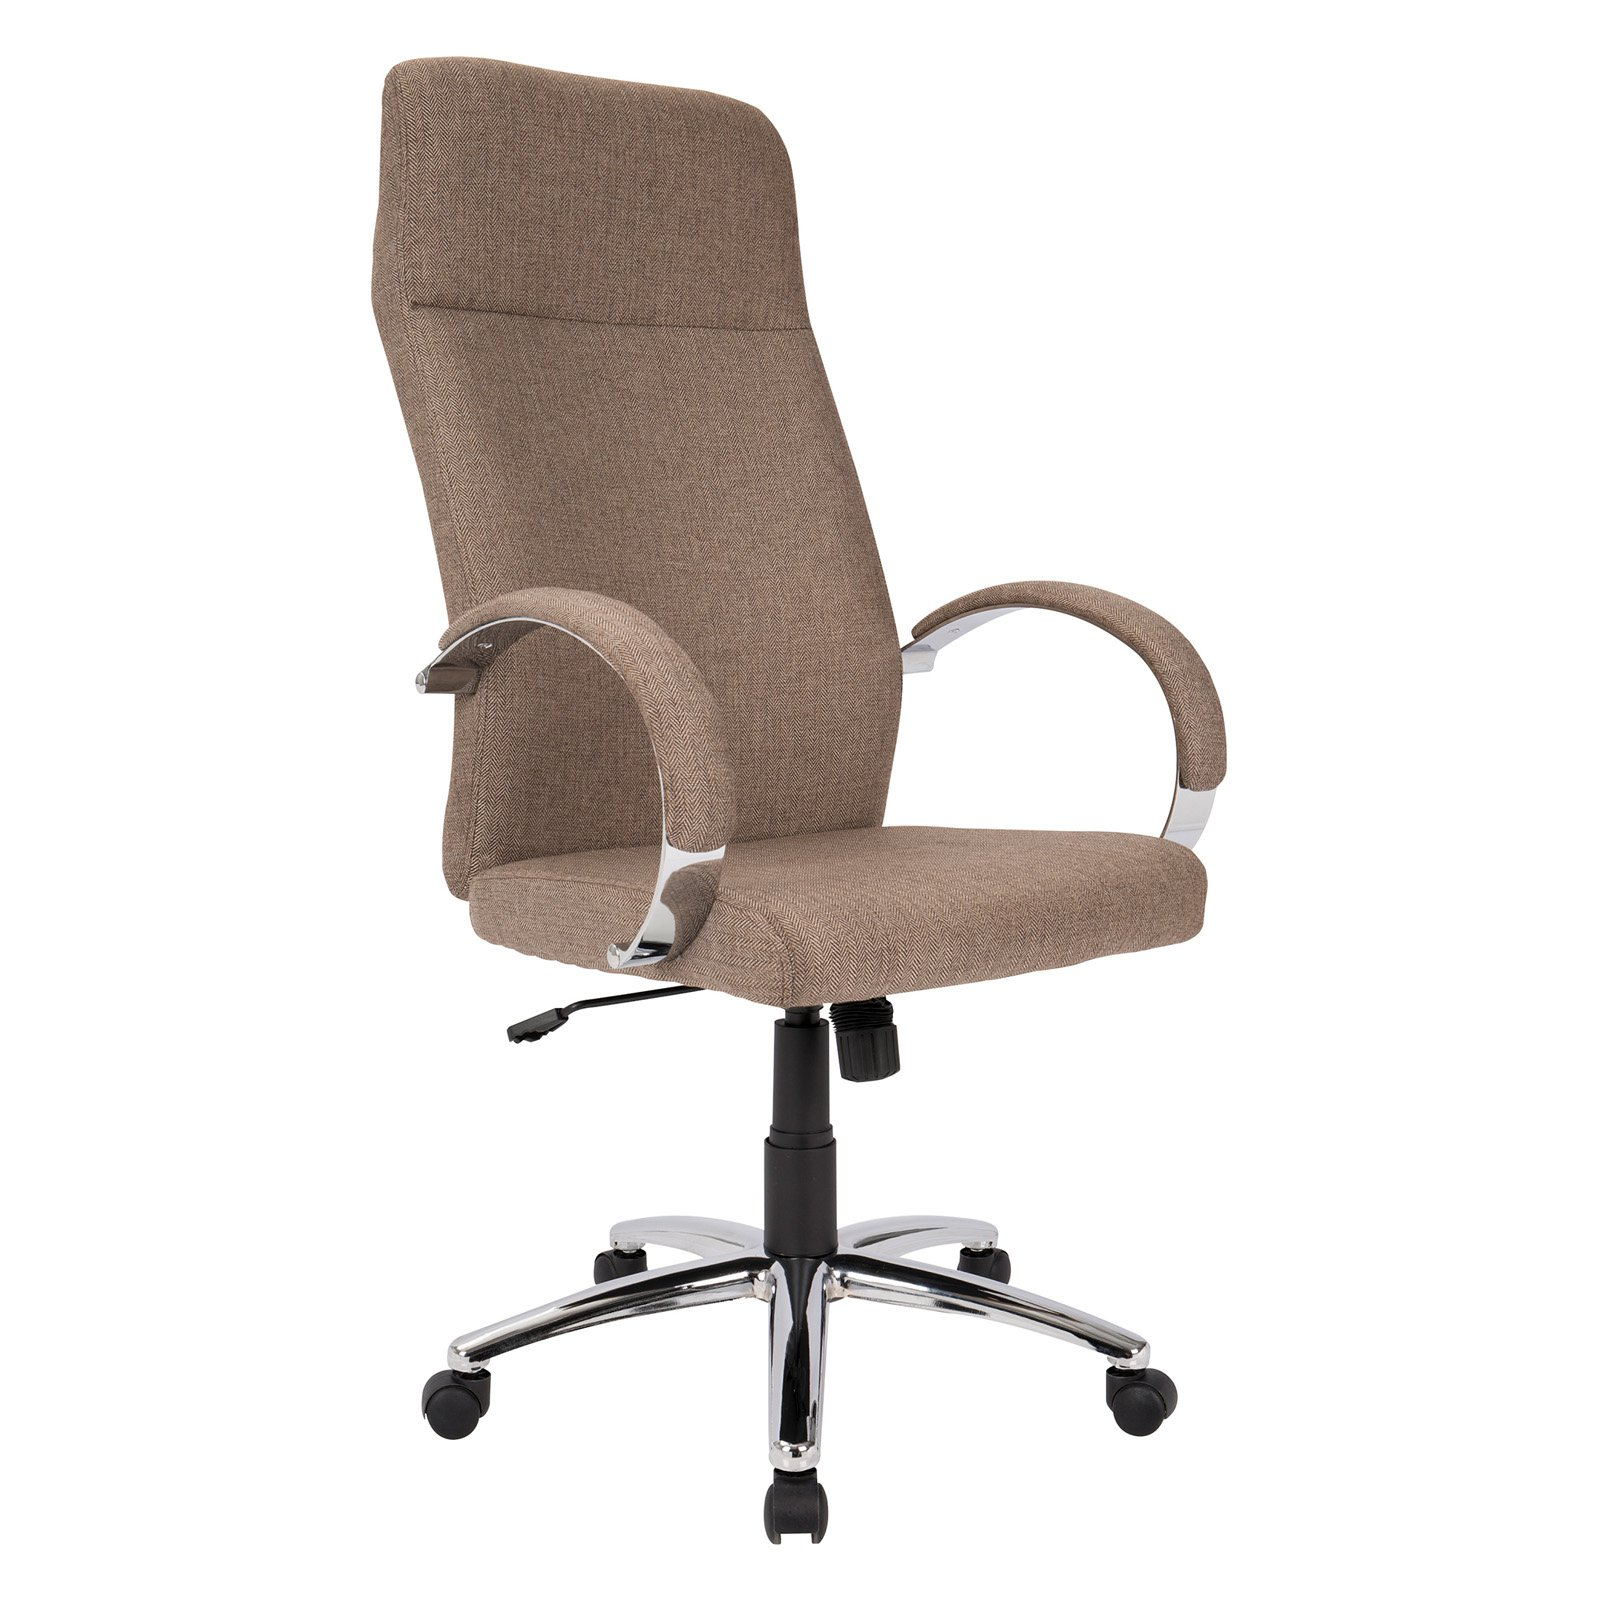 Lumisource Ambassador Office Task Chair by LumiSource